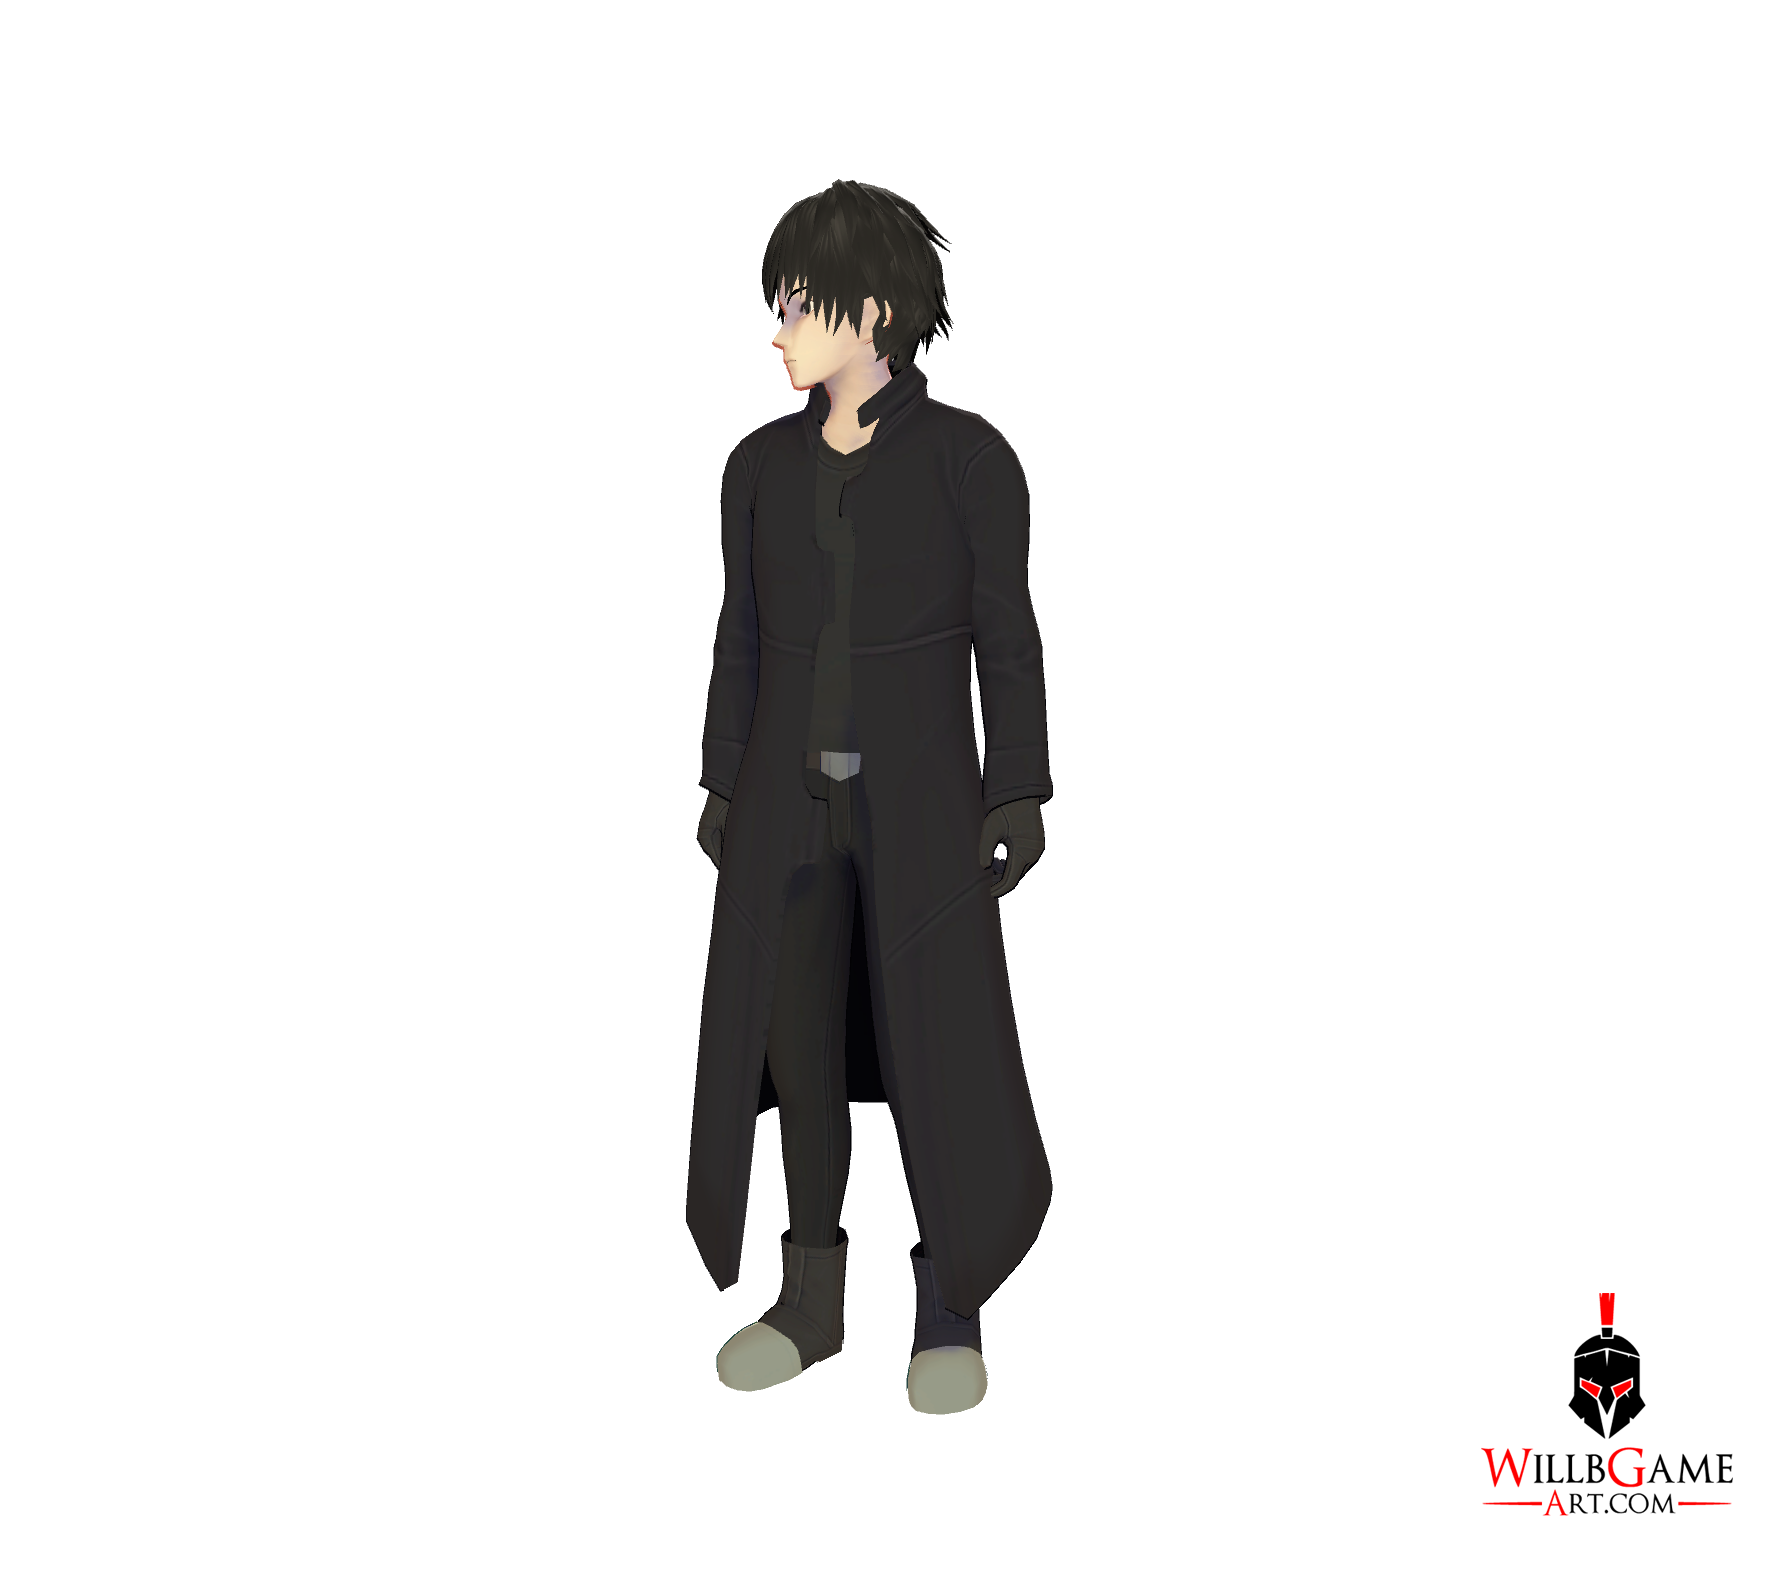 M_Anime_clothing 02_4.png